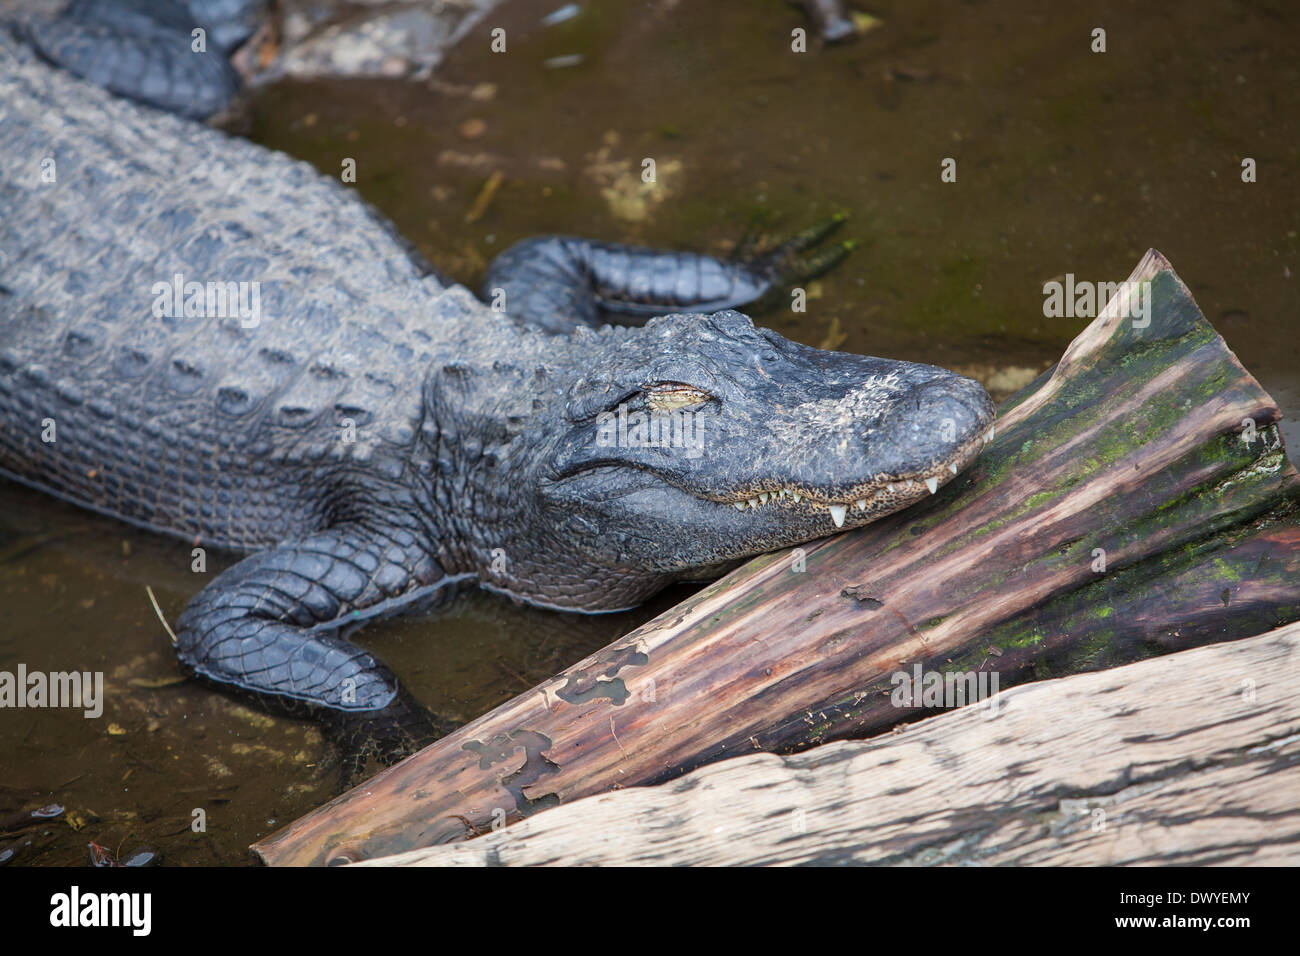 An alligator is pictured in St. Augustine alligator farm, Florida - Stock Image